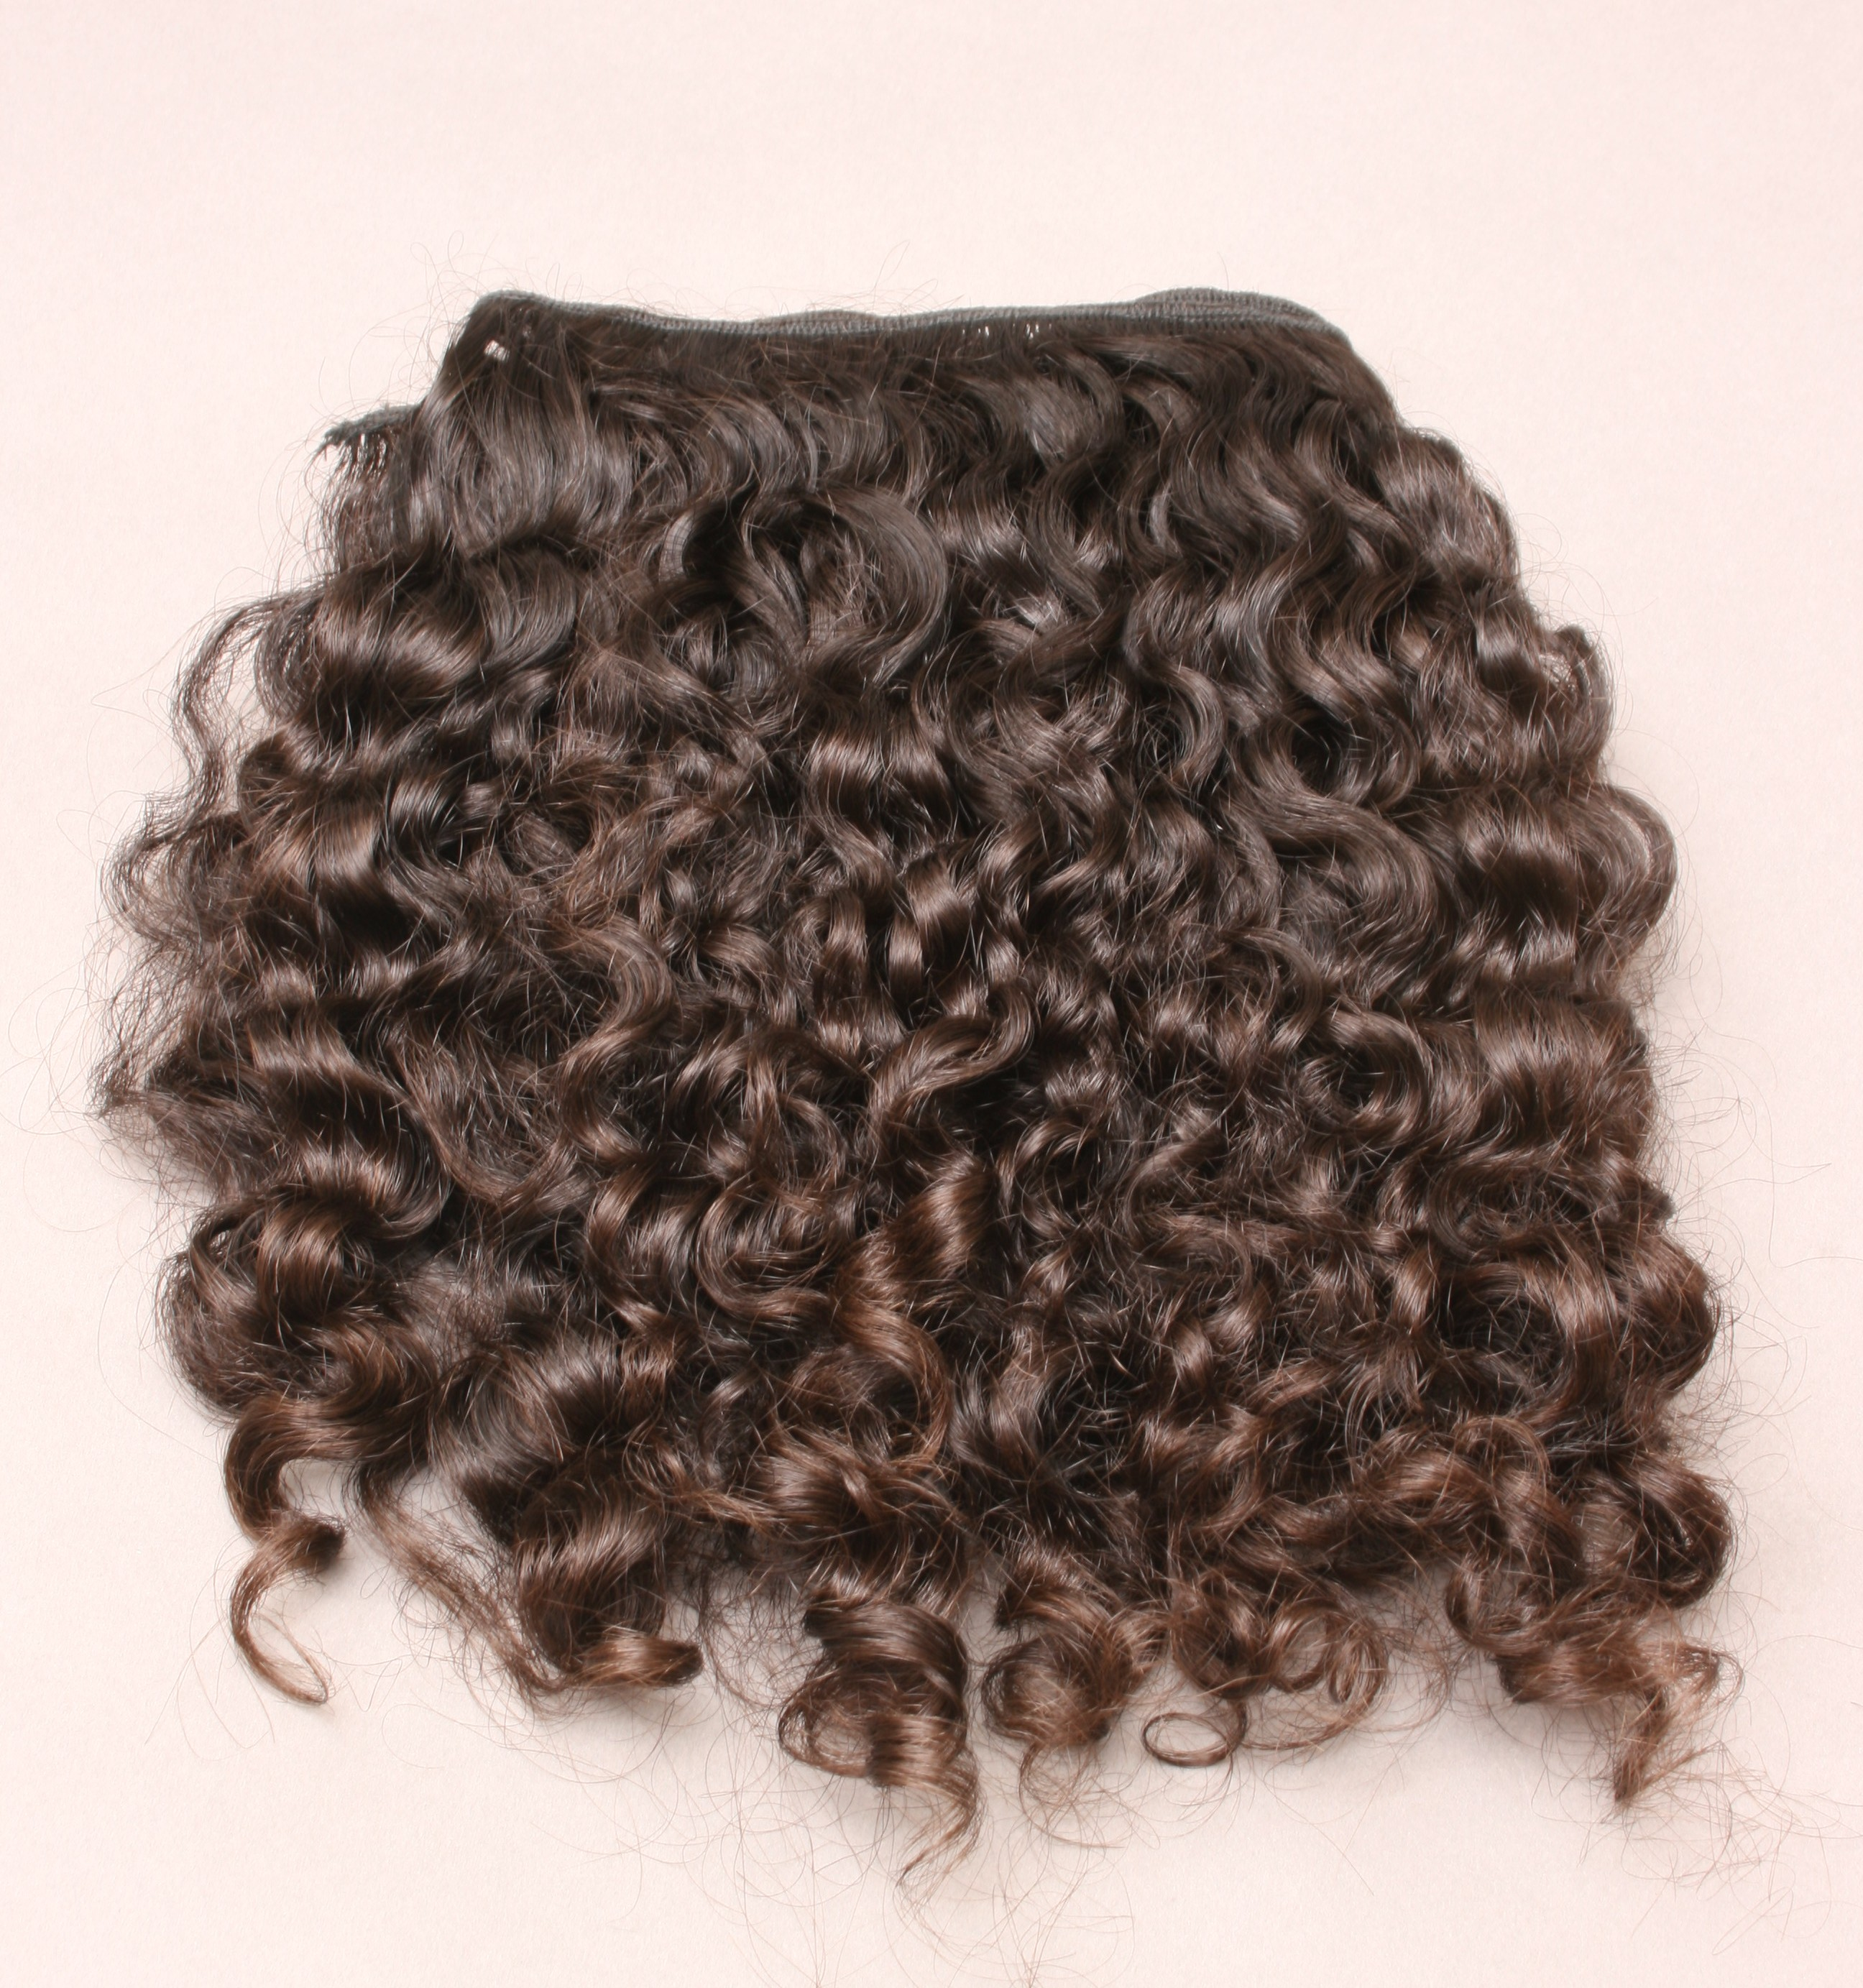 Indian - All Natural Ringlet Curly